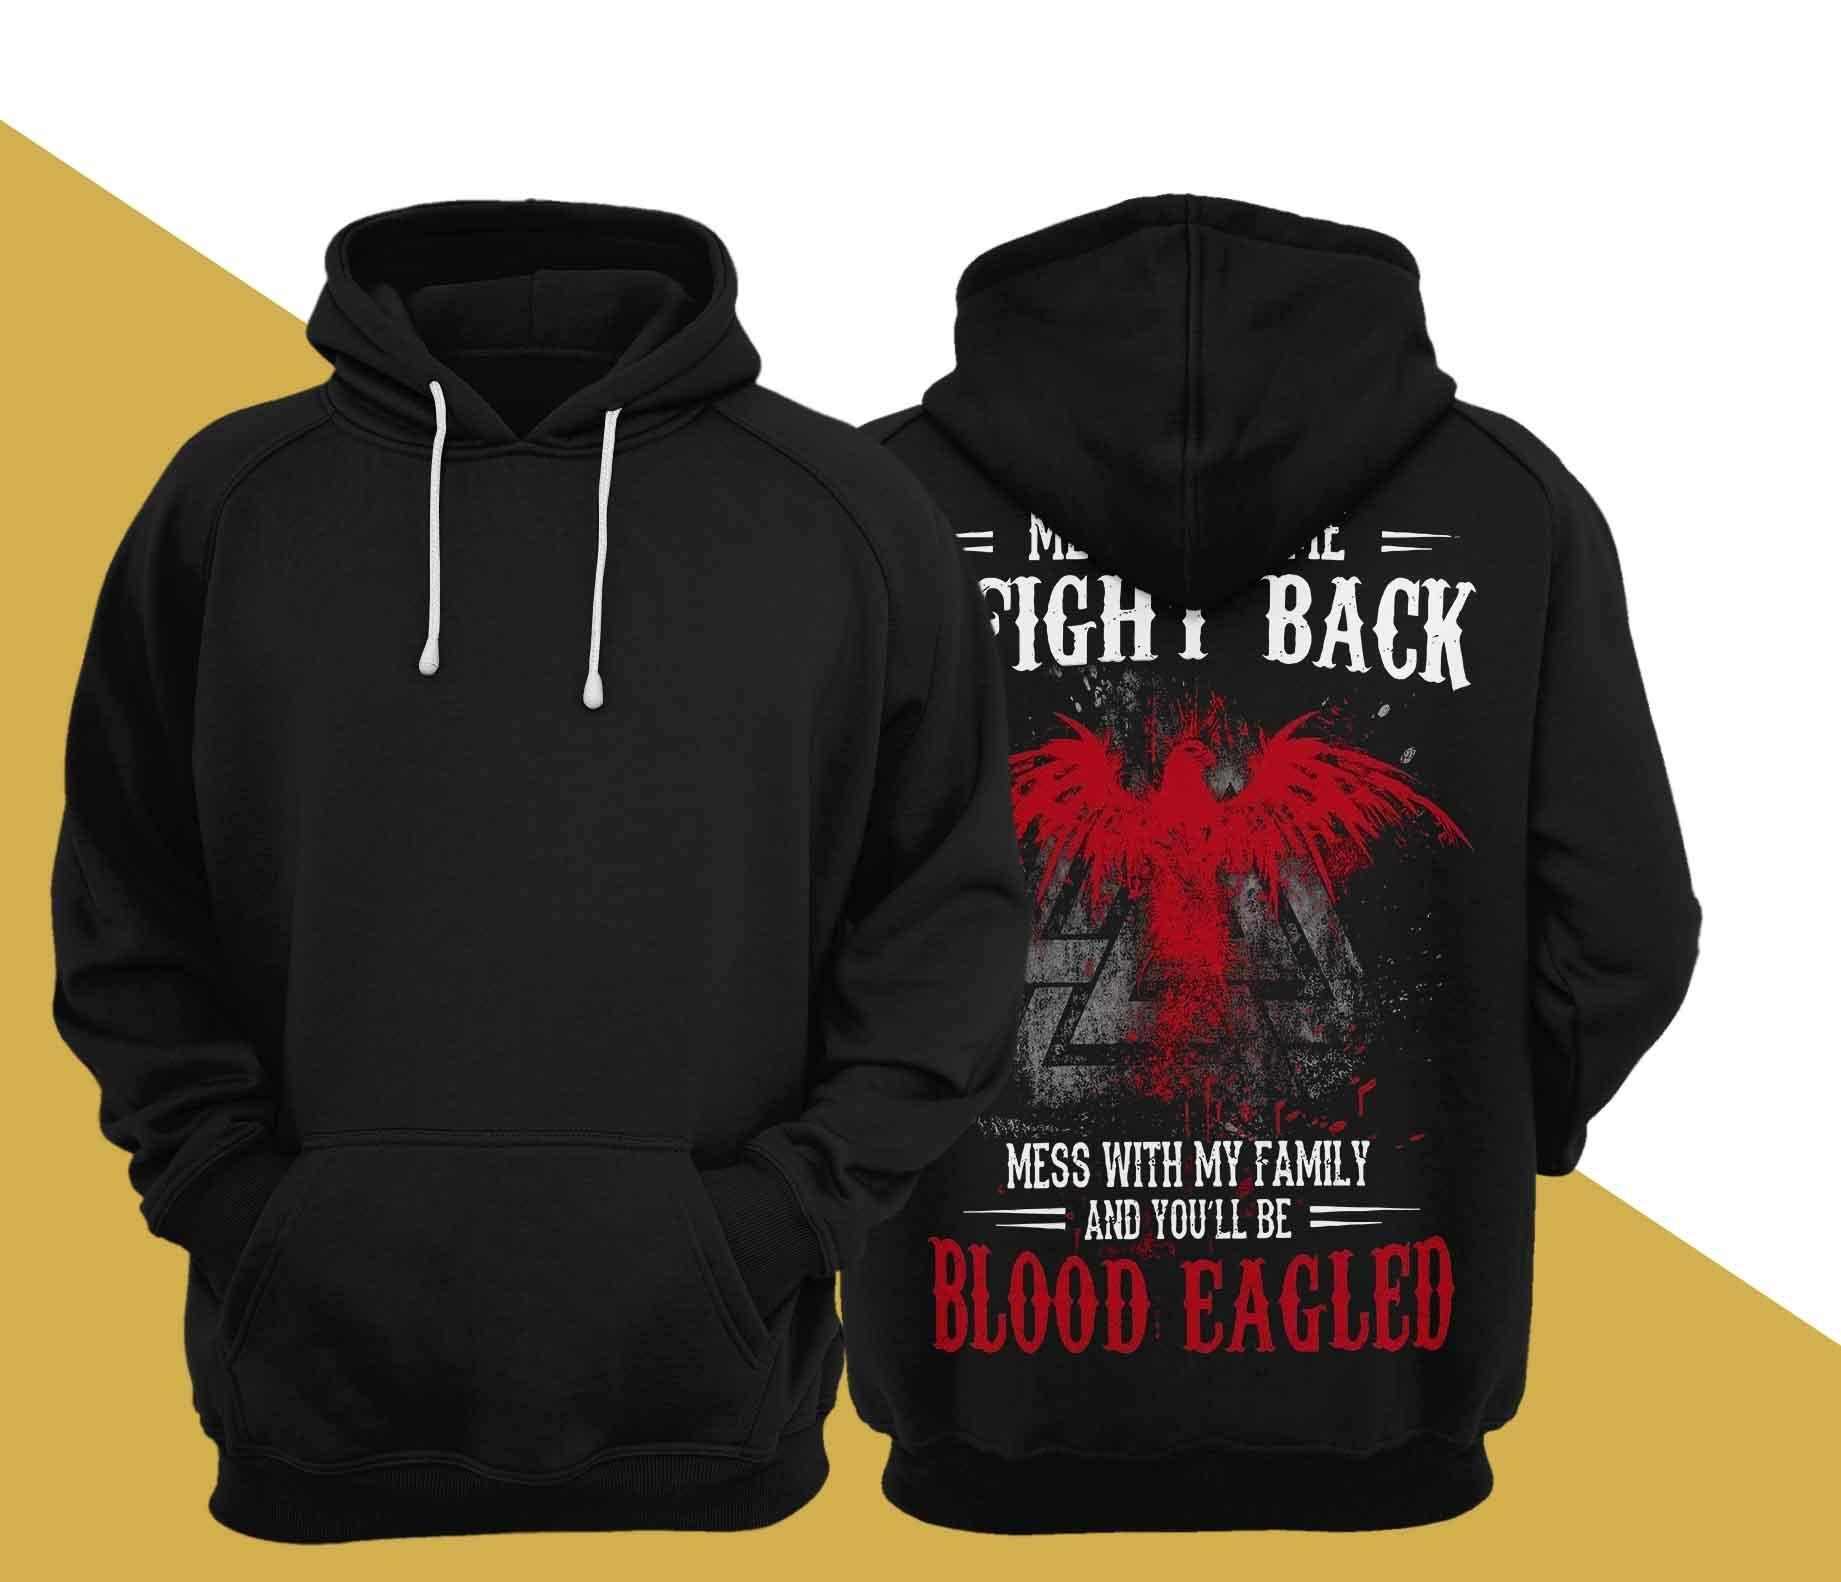 Mess With Me I Fight Back Mess With My Family And You'll Be Blood Eagled Hoodie